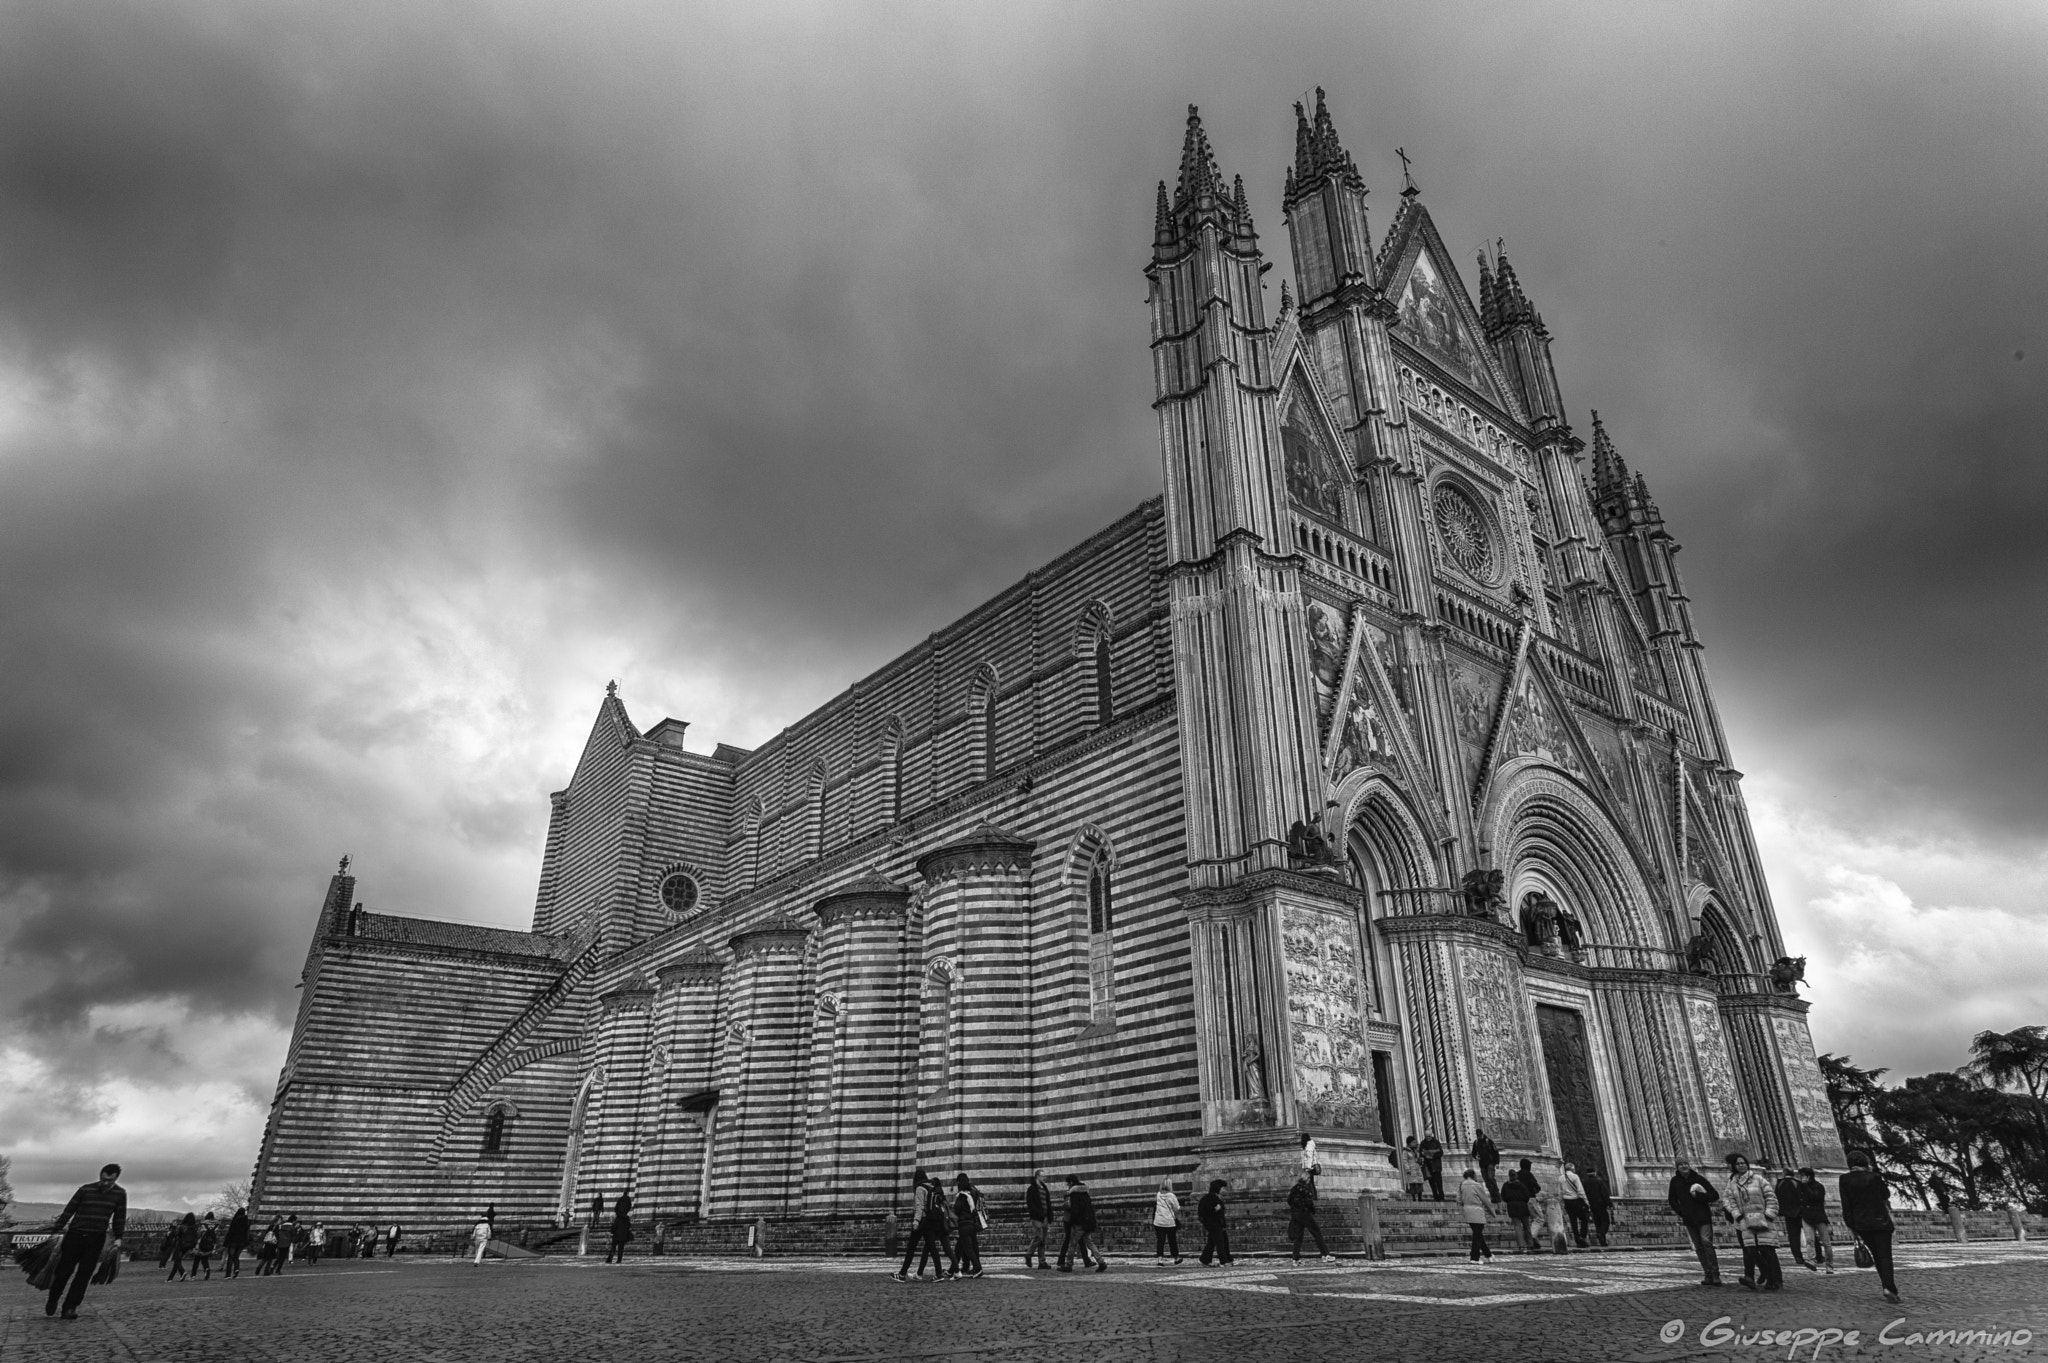 Photograph Orvieto - Orvieto Cathedral by Giuseppe Cammino on 500px